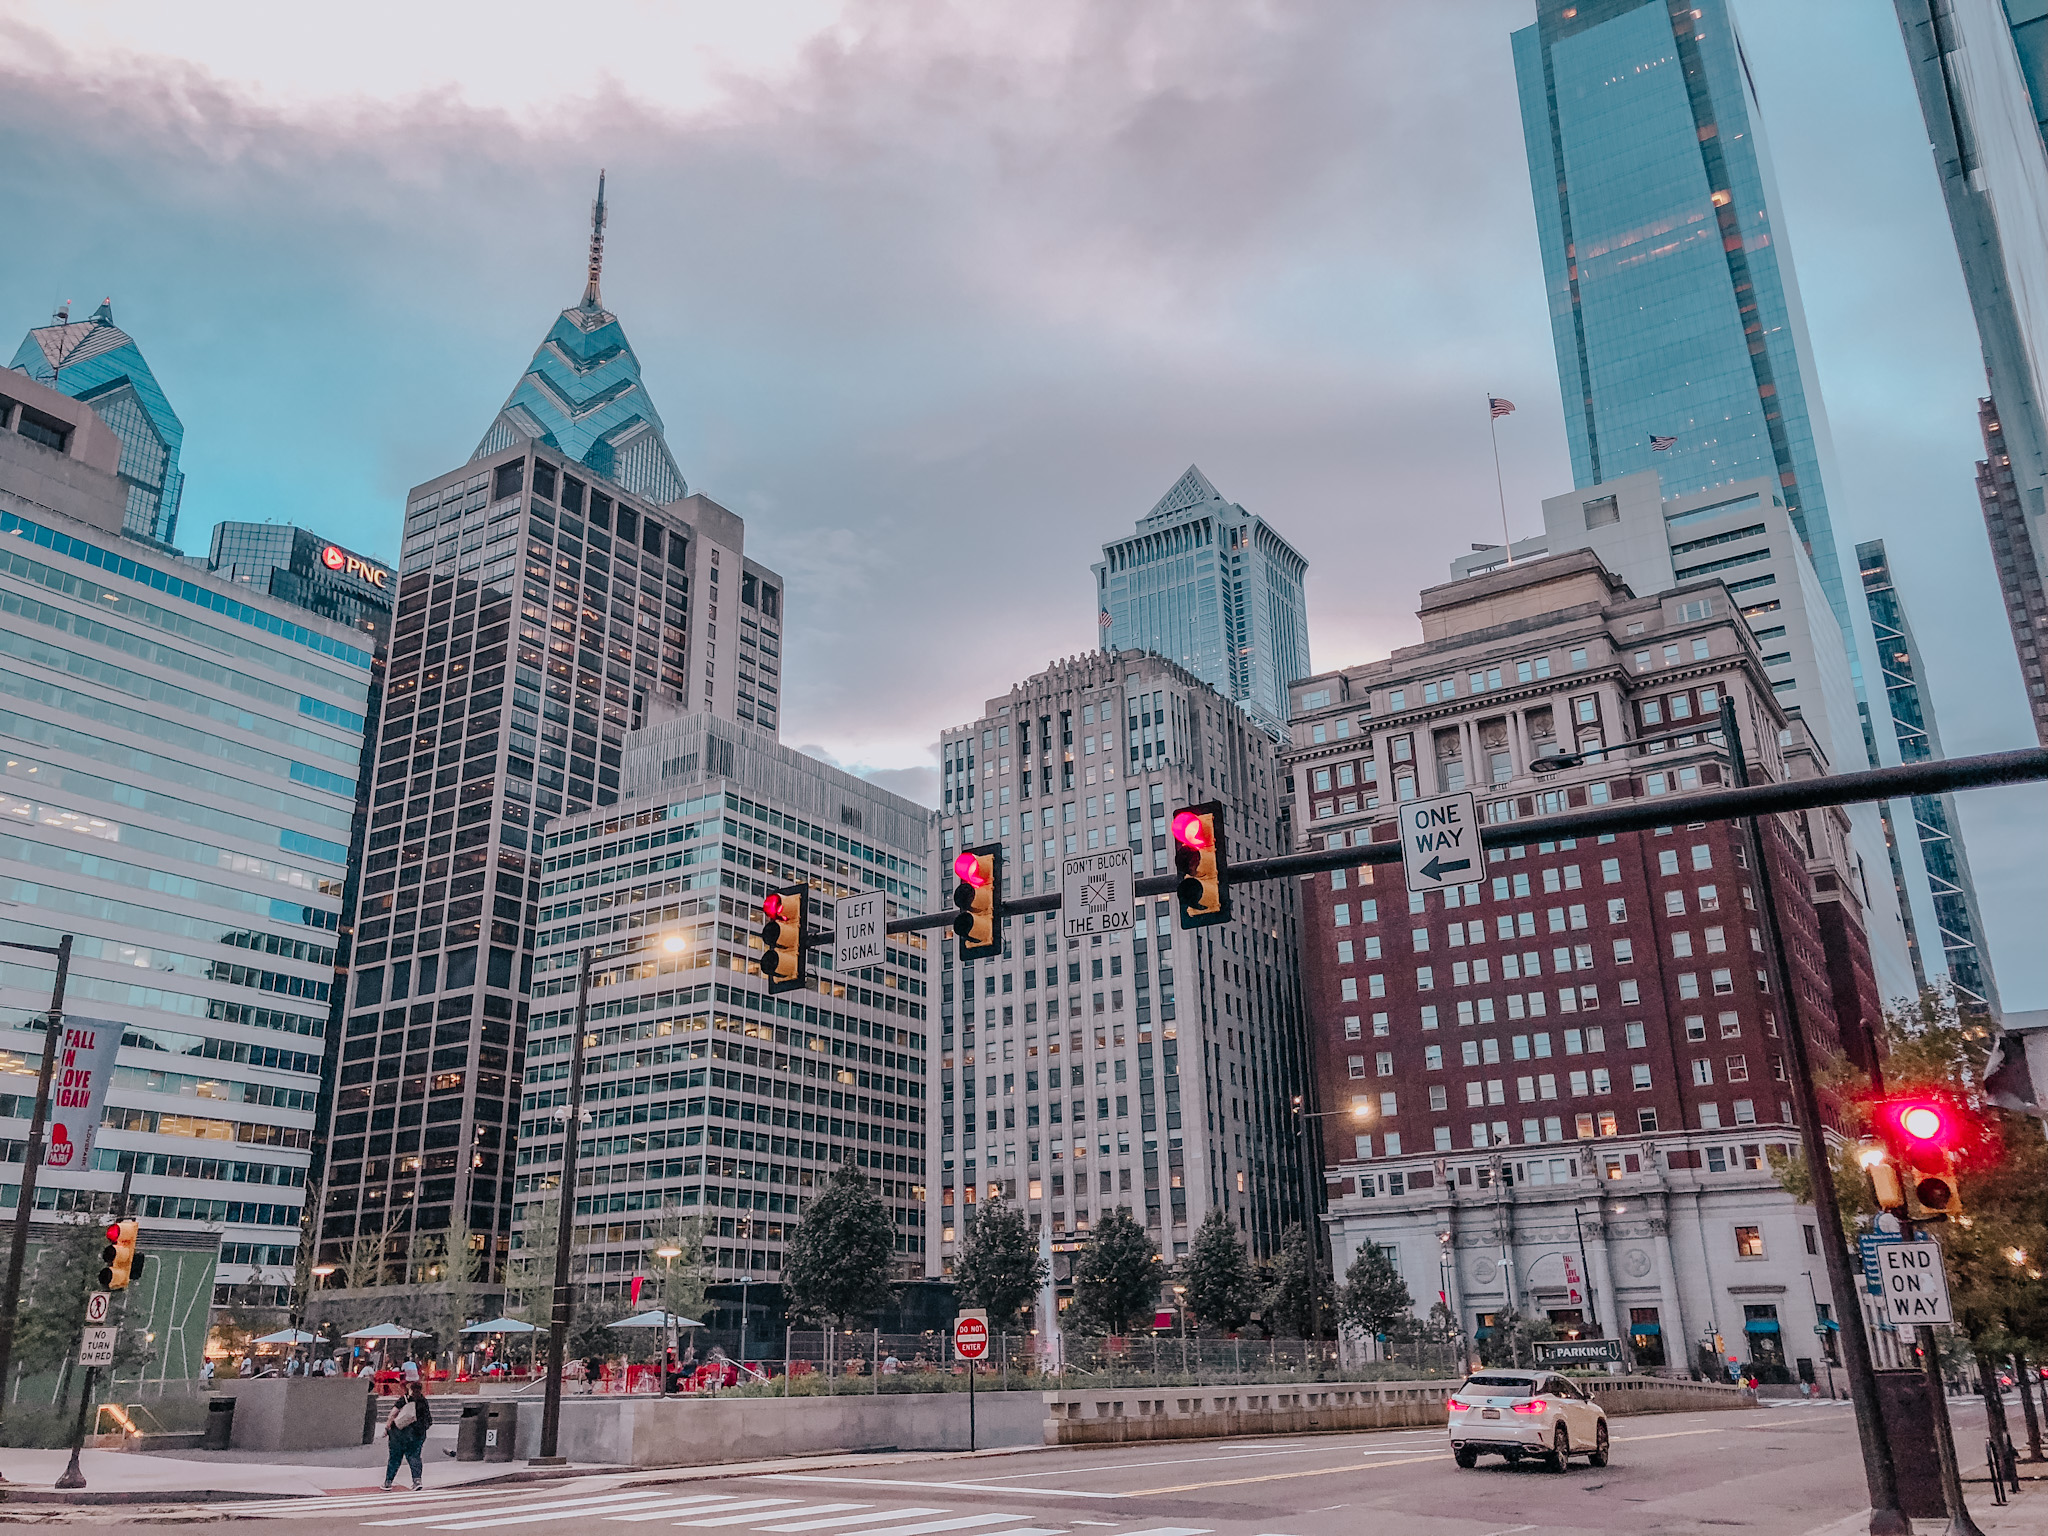 2 Days In Philadelphia Itinerary - What To See, Where To Stay & Eat